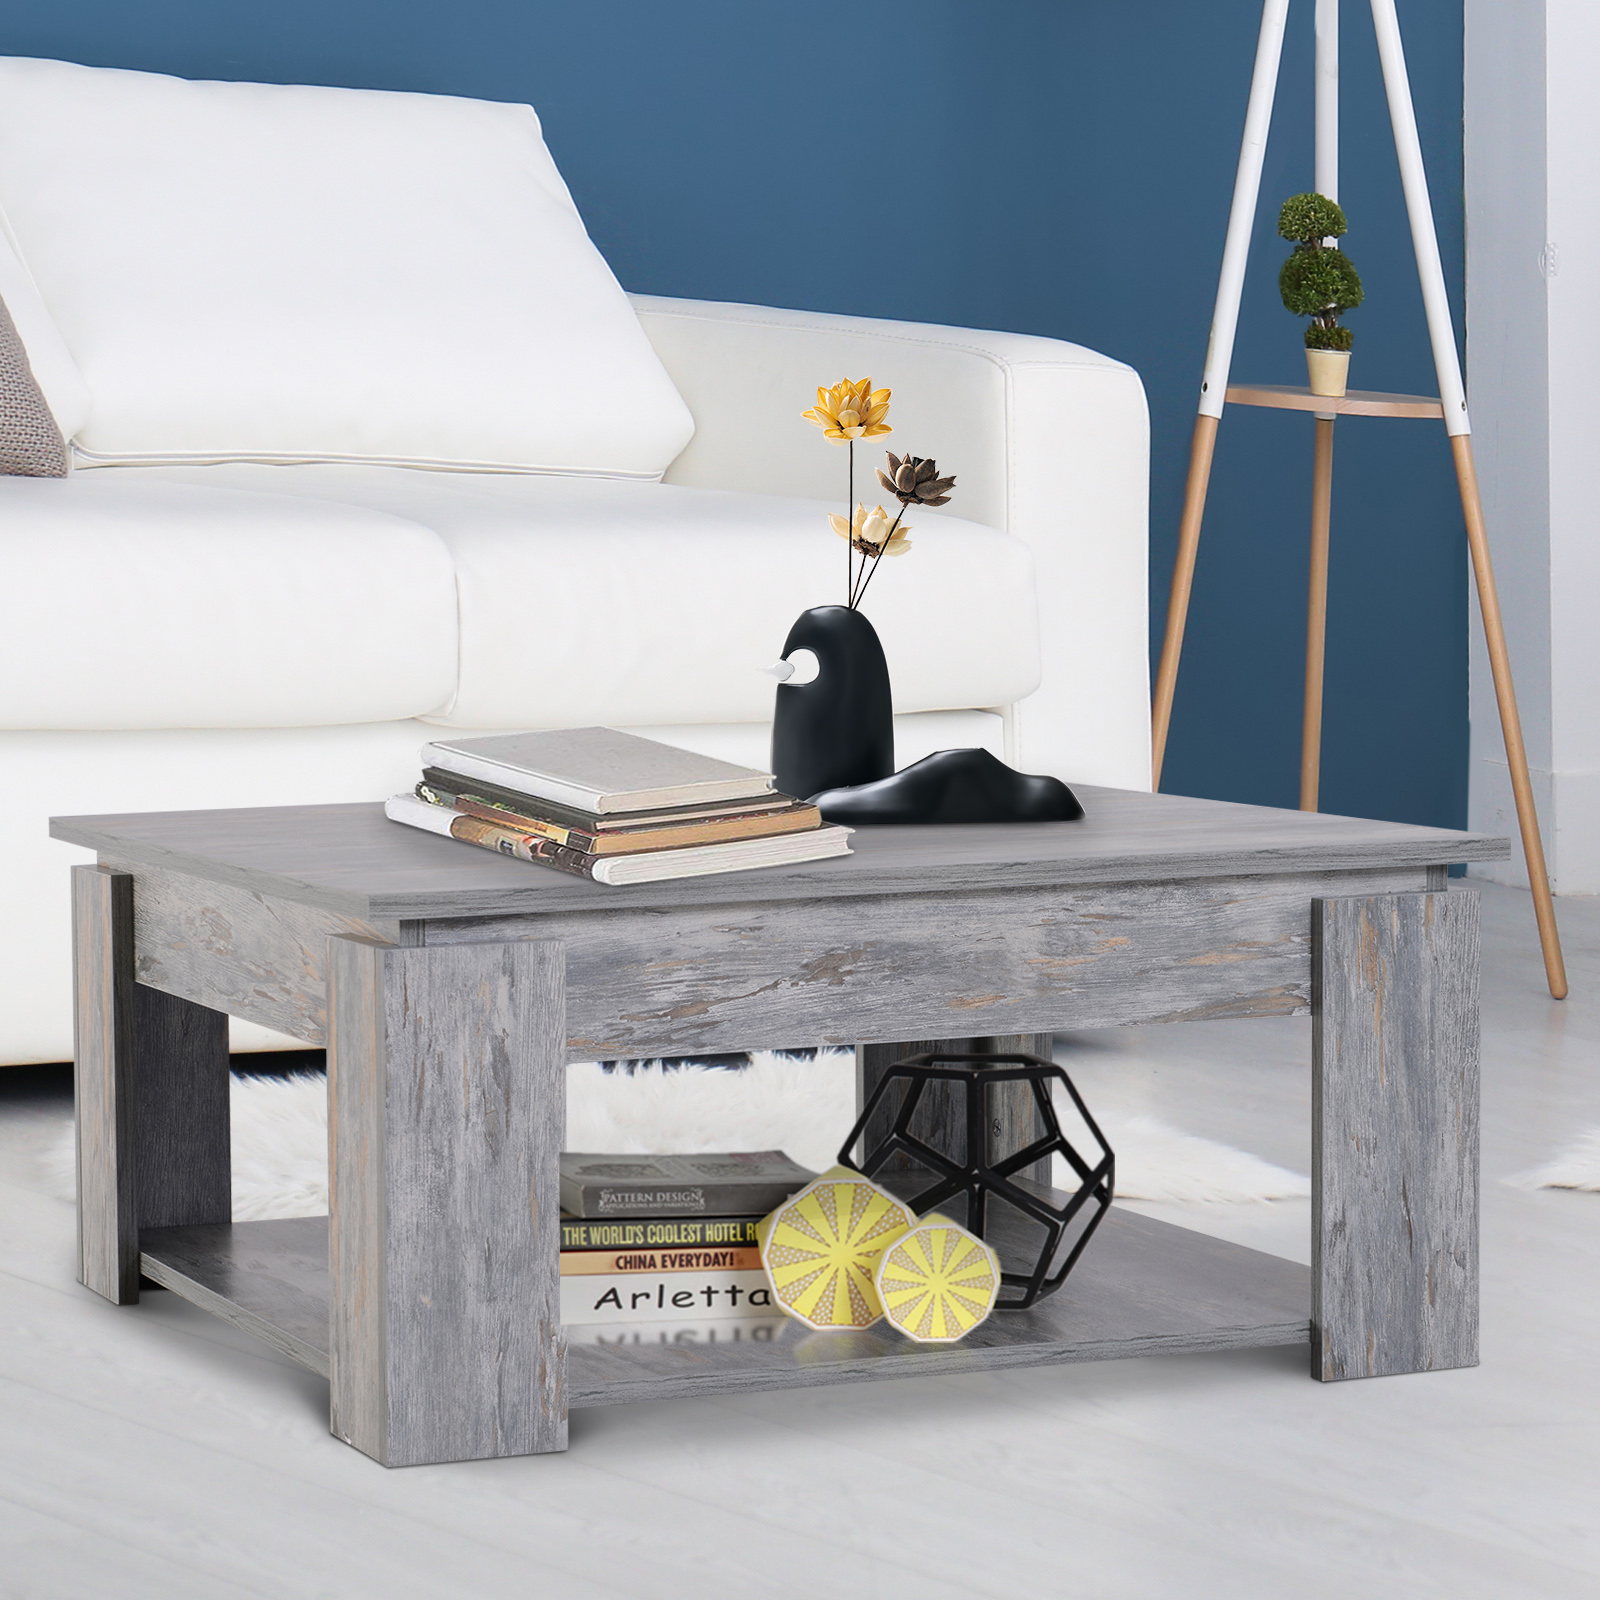 Modern Coffee Table With Storage Details About 2 Tier Modern Coffee Table Console Table Storage Shelf Living Room Wood Grain